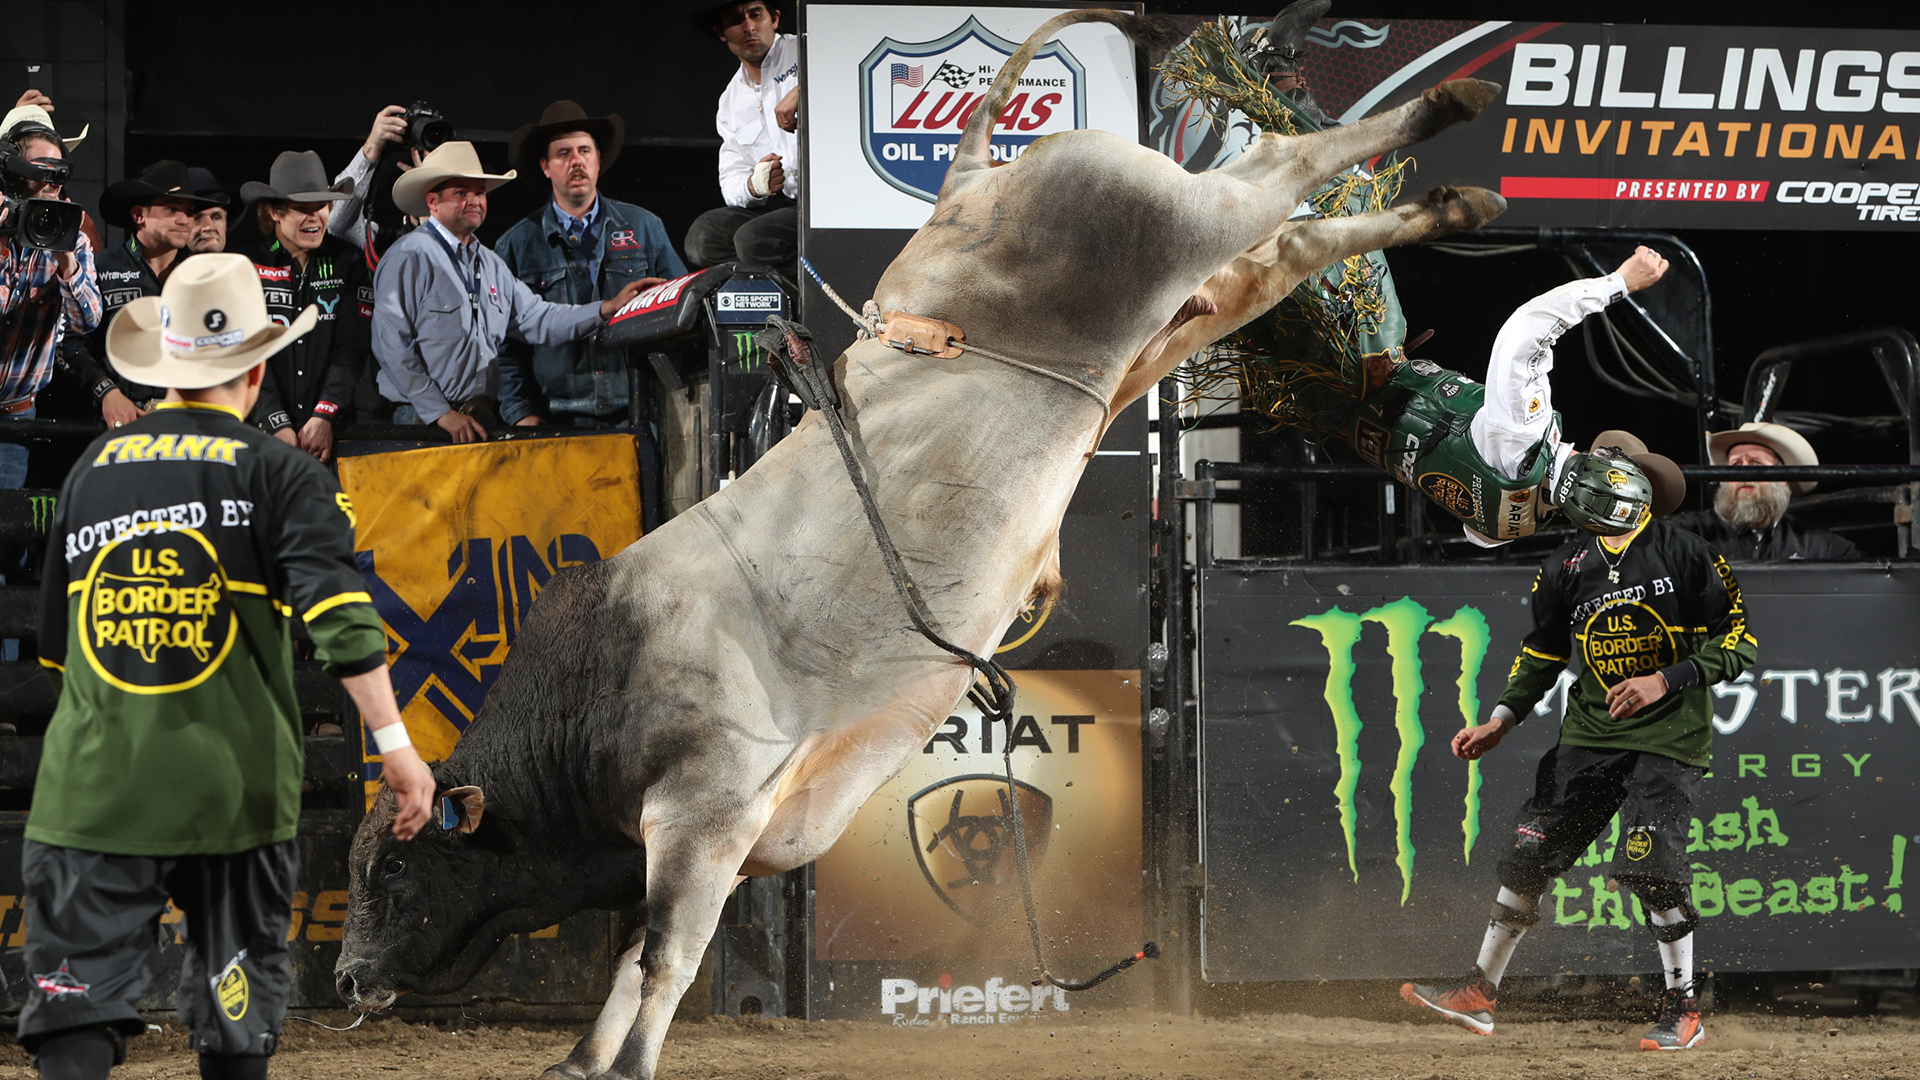 SweetPro's Bruiser takes down two World Champions in Billings